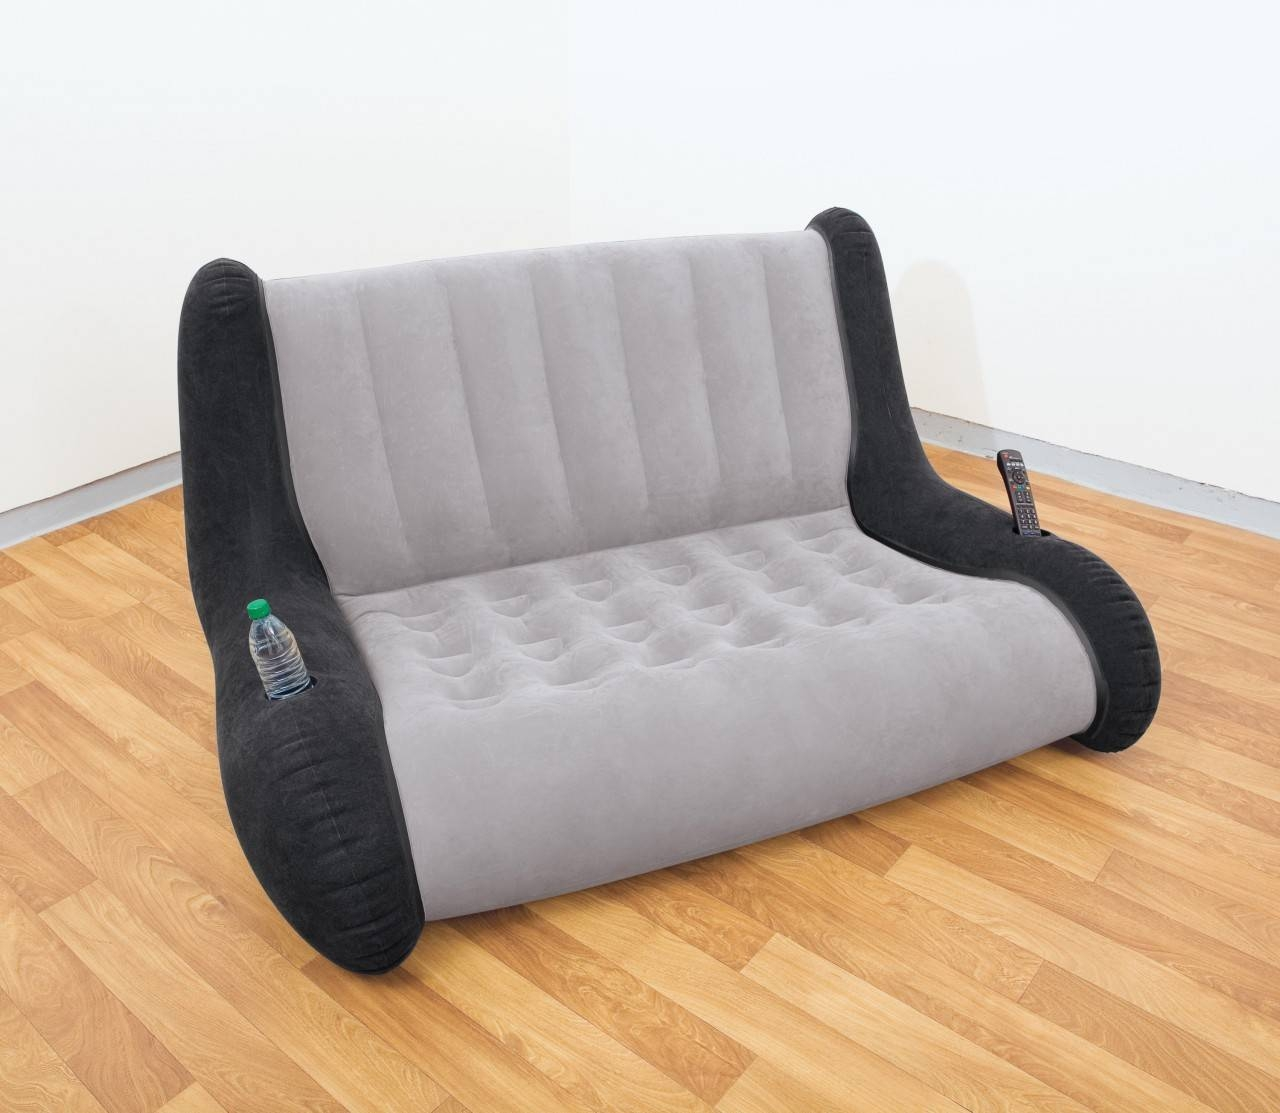 Intex Inflatable Sofa Lounge Inside Intex Inflatable Sofas (View 14 of 15)